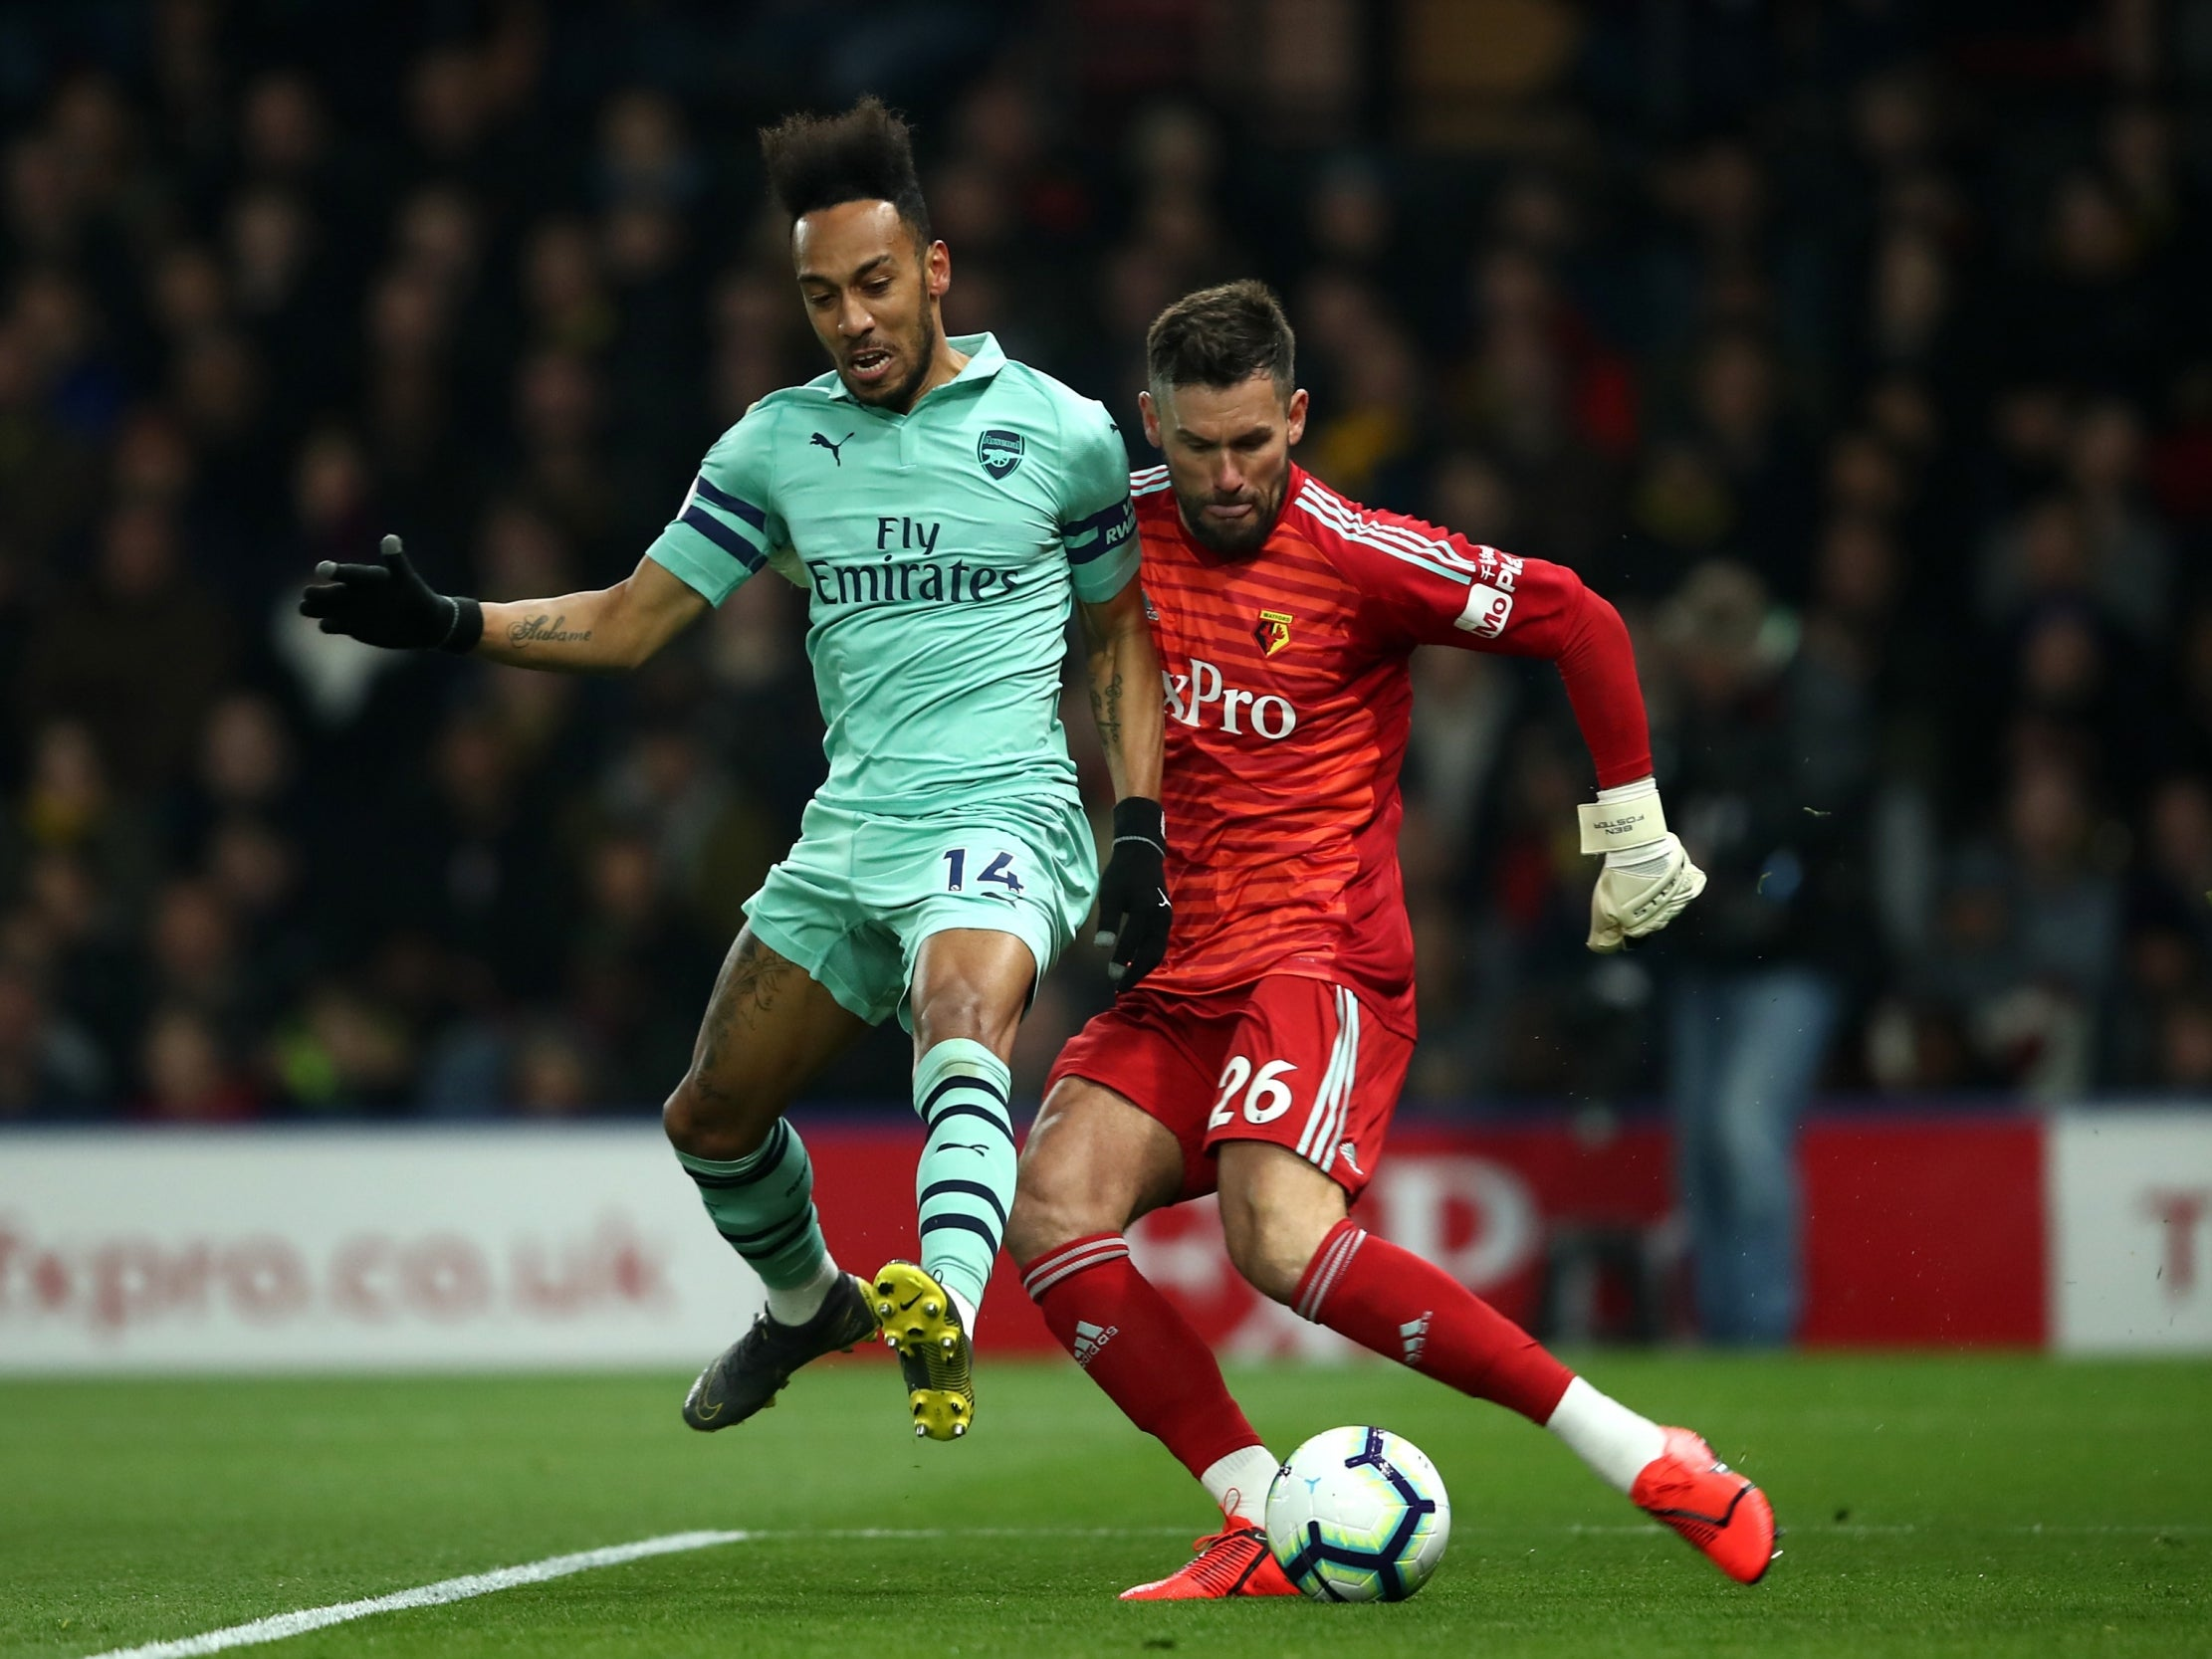 Watford Vs Arsenal Result Pierre Emerick Aubameyang Pounces On Ben Foster Error To Earn Vital Points The Independent